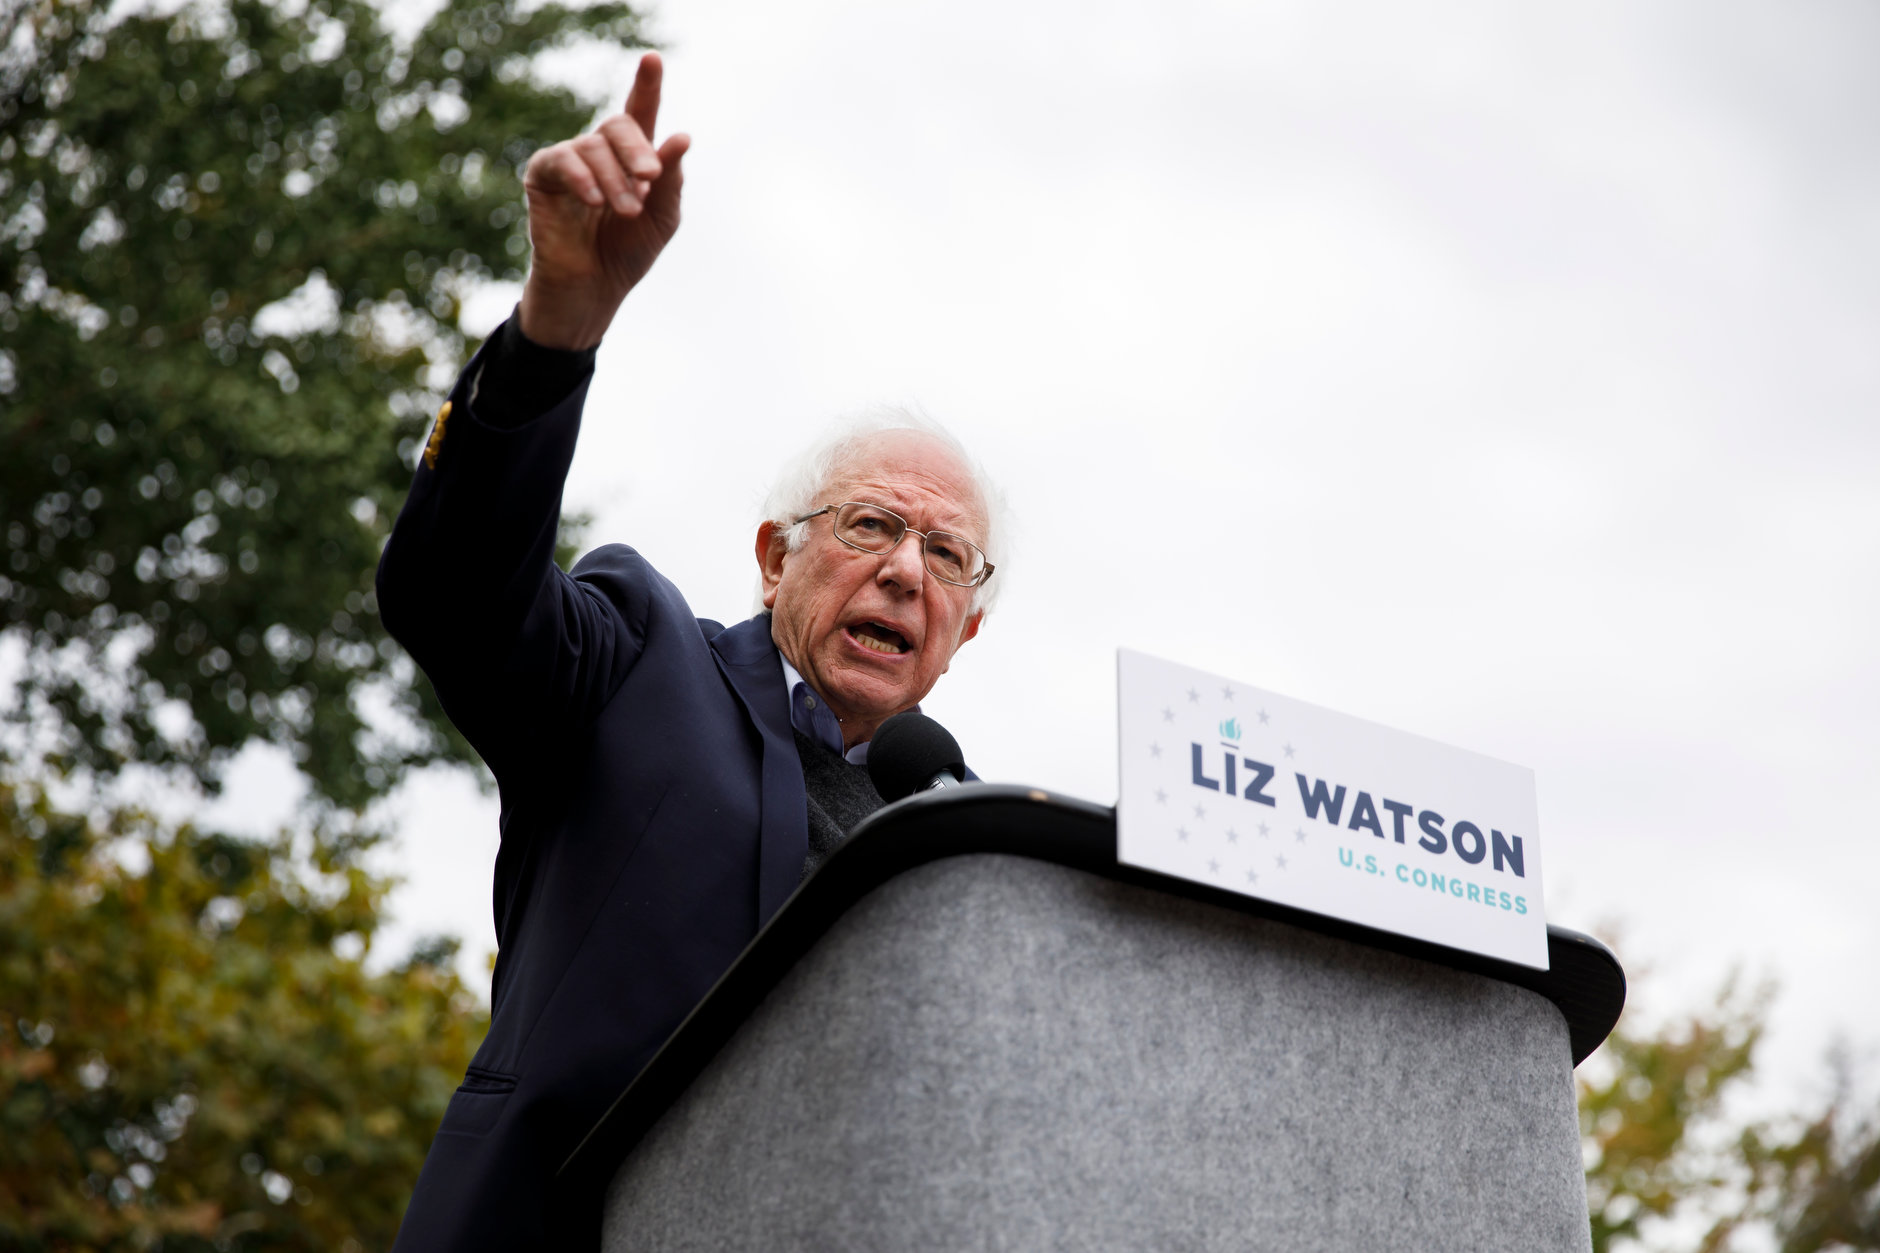 U.S. Sen. Bernie Sanders, I-VT, campaigns for Liz Watson, the Democratic nominee for Indiana's 9th congressional district, during a rally in Dunn Meadow at Indiana University Bloomington on Friday, Oct. 19, 2018. (James Brosher/IU Communications)